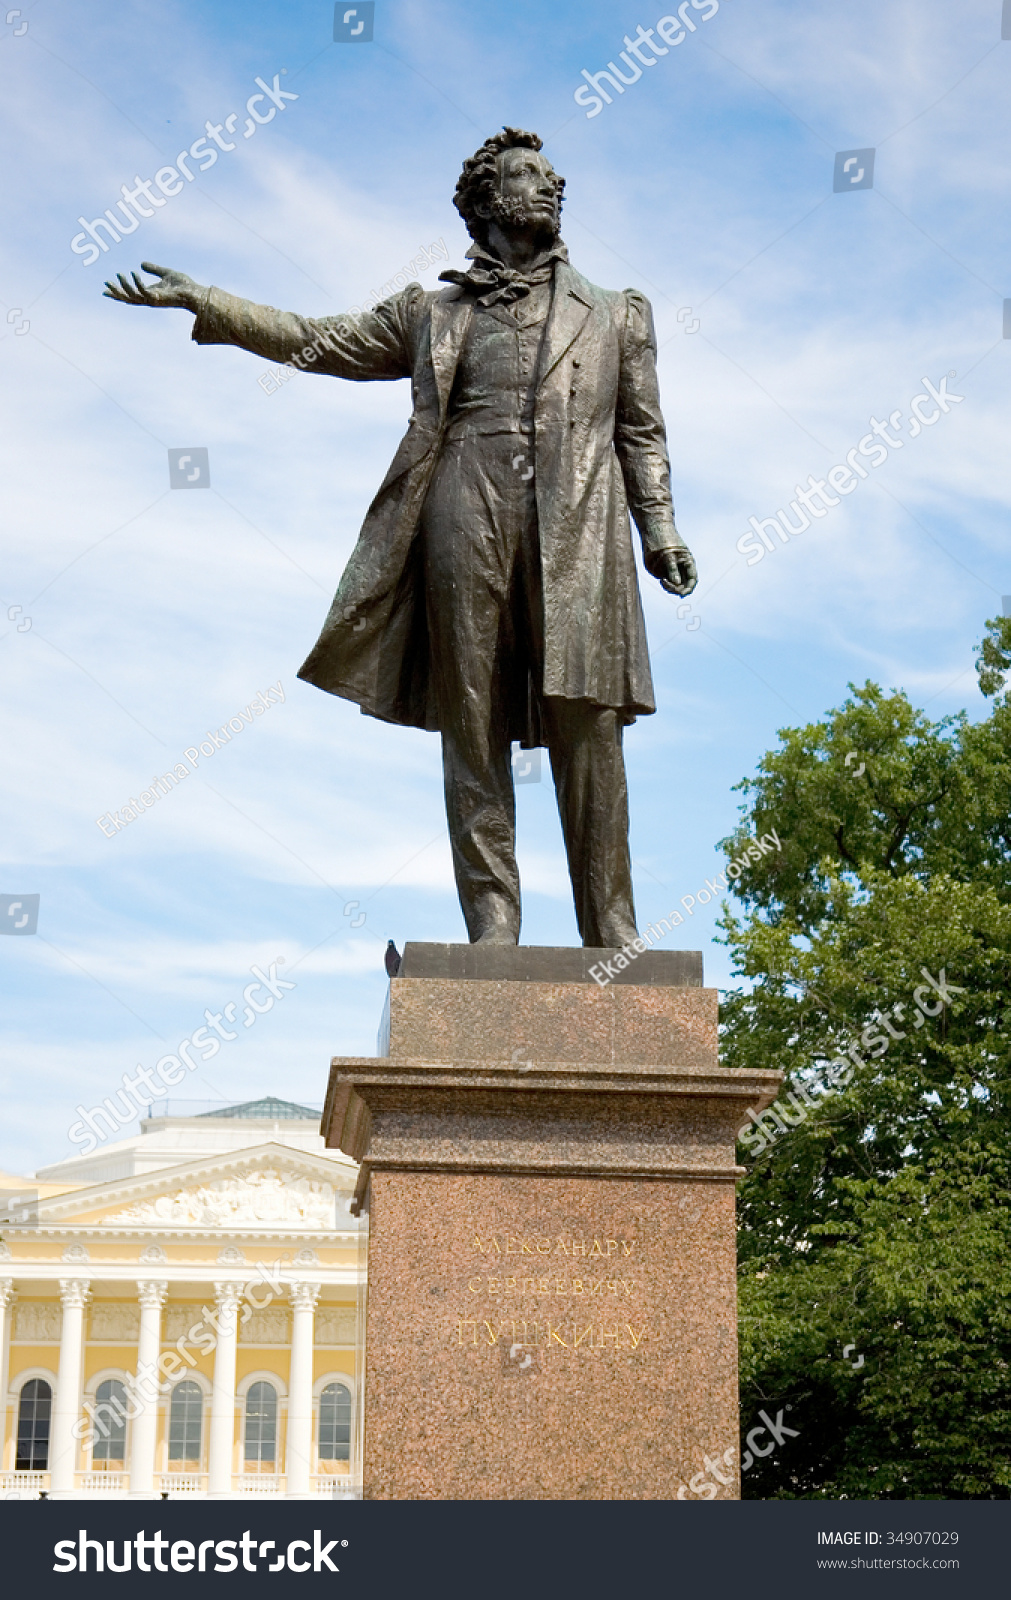 Statue of Alexander Pushkin, famous Russian poet. Arts Square, St.Petersburg, Russia        - Image